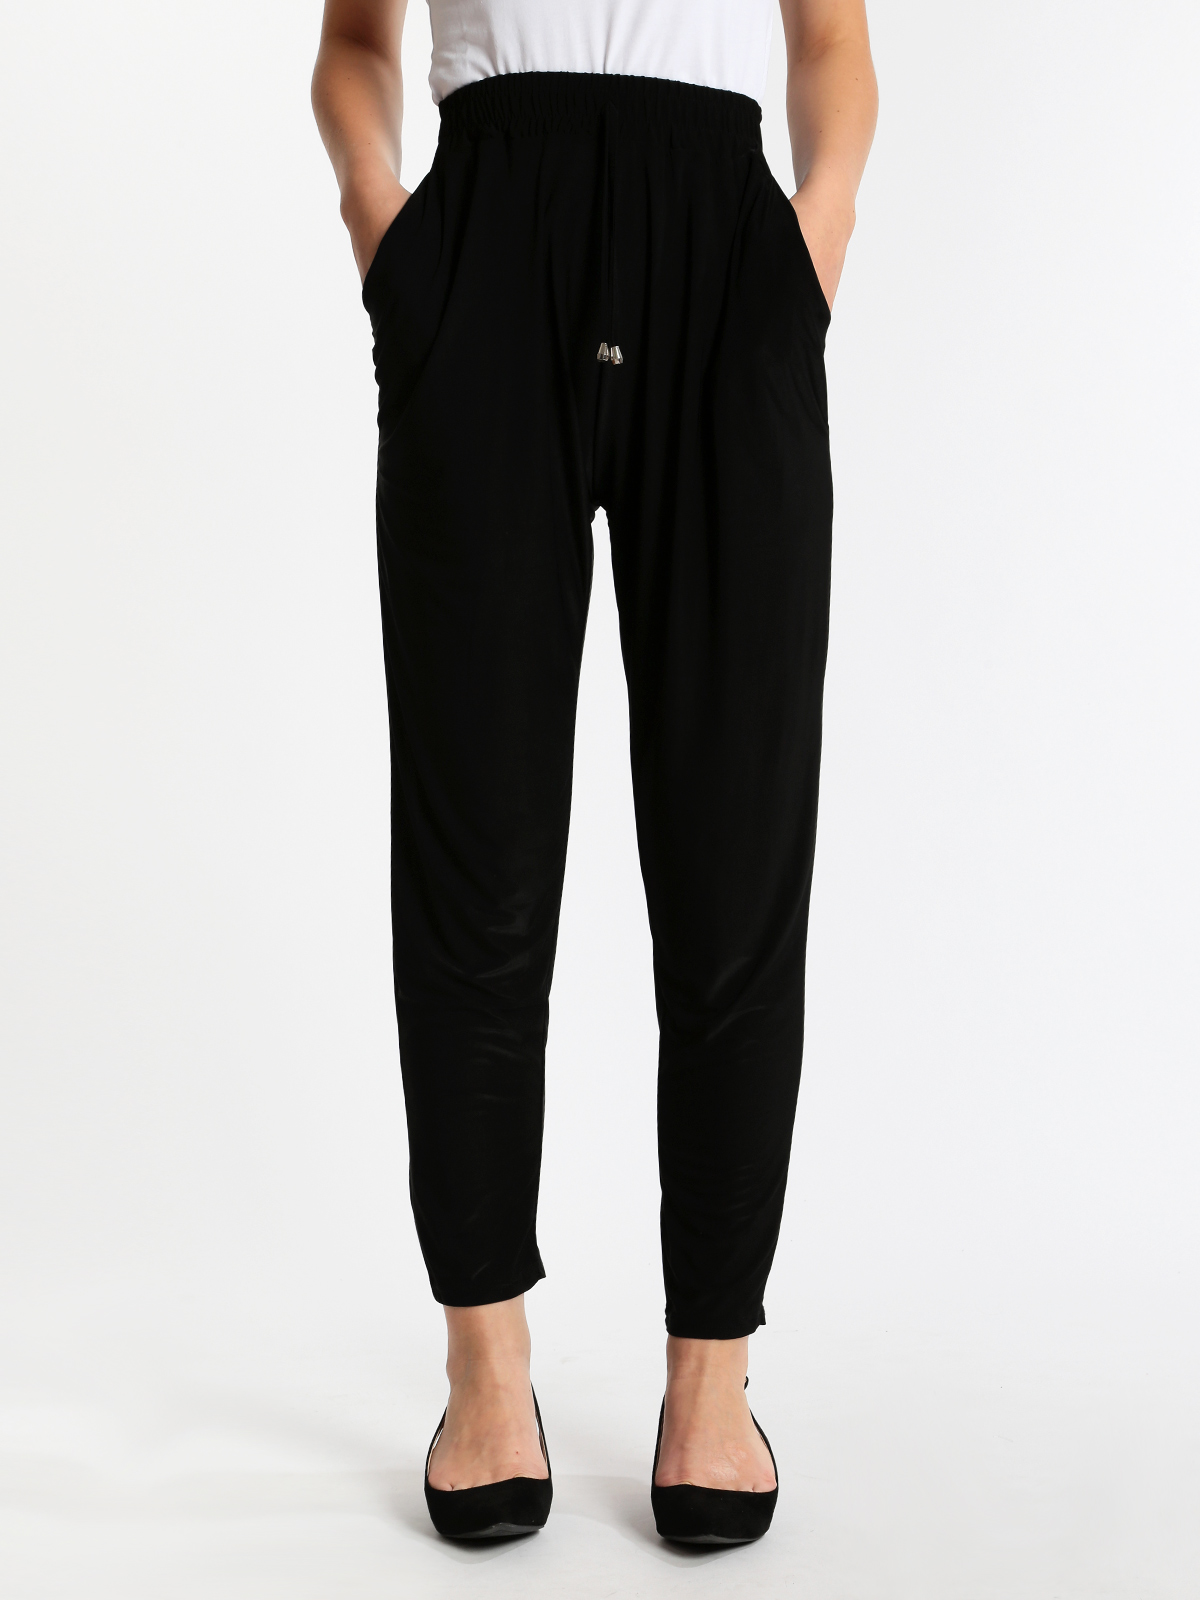 SOLADA Soft Pants Black